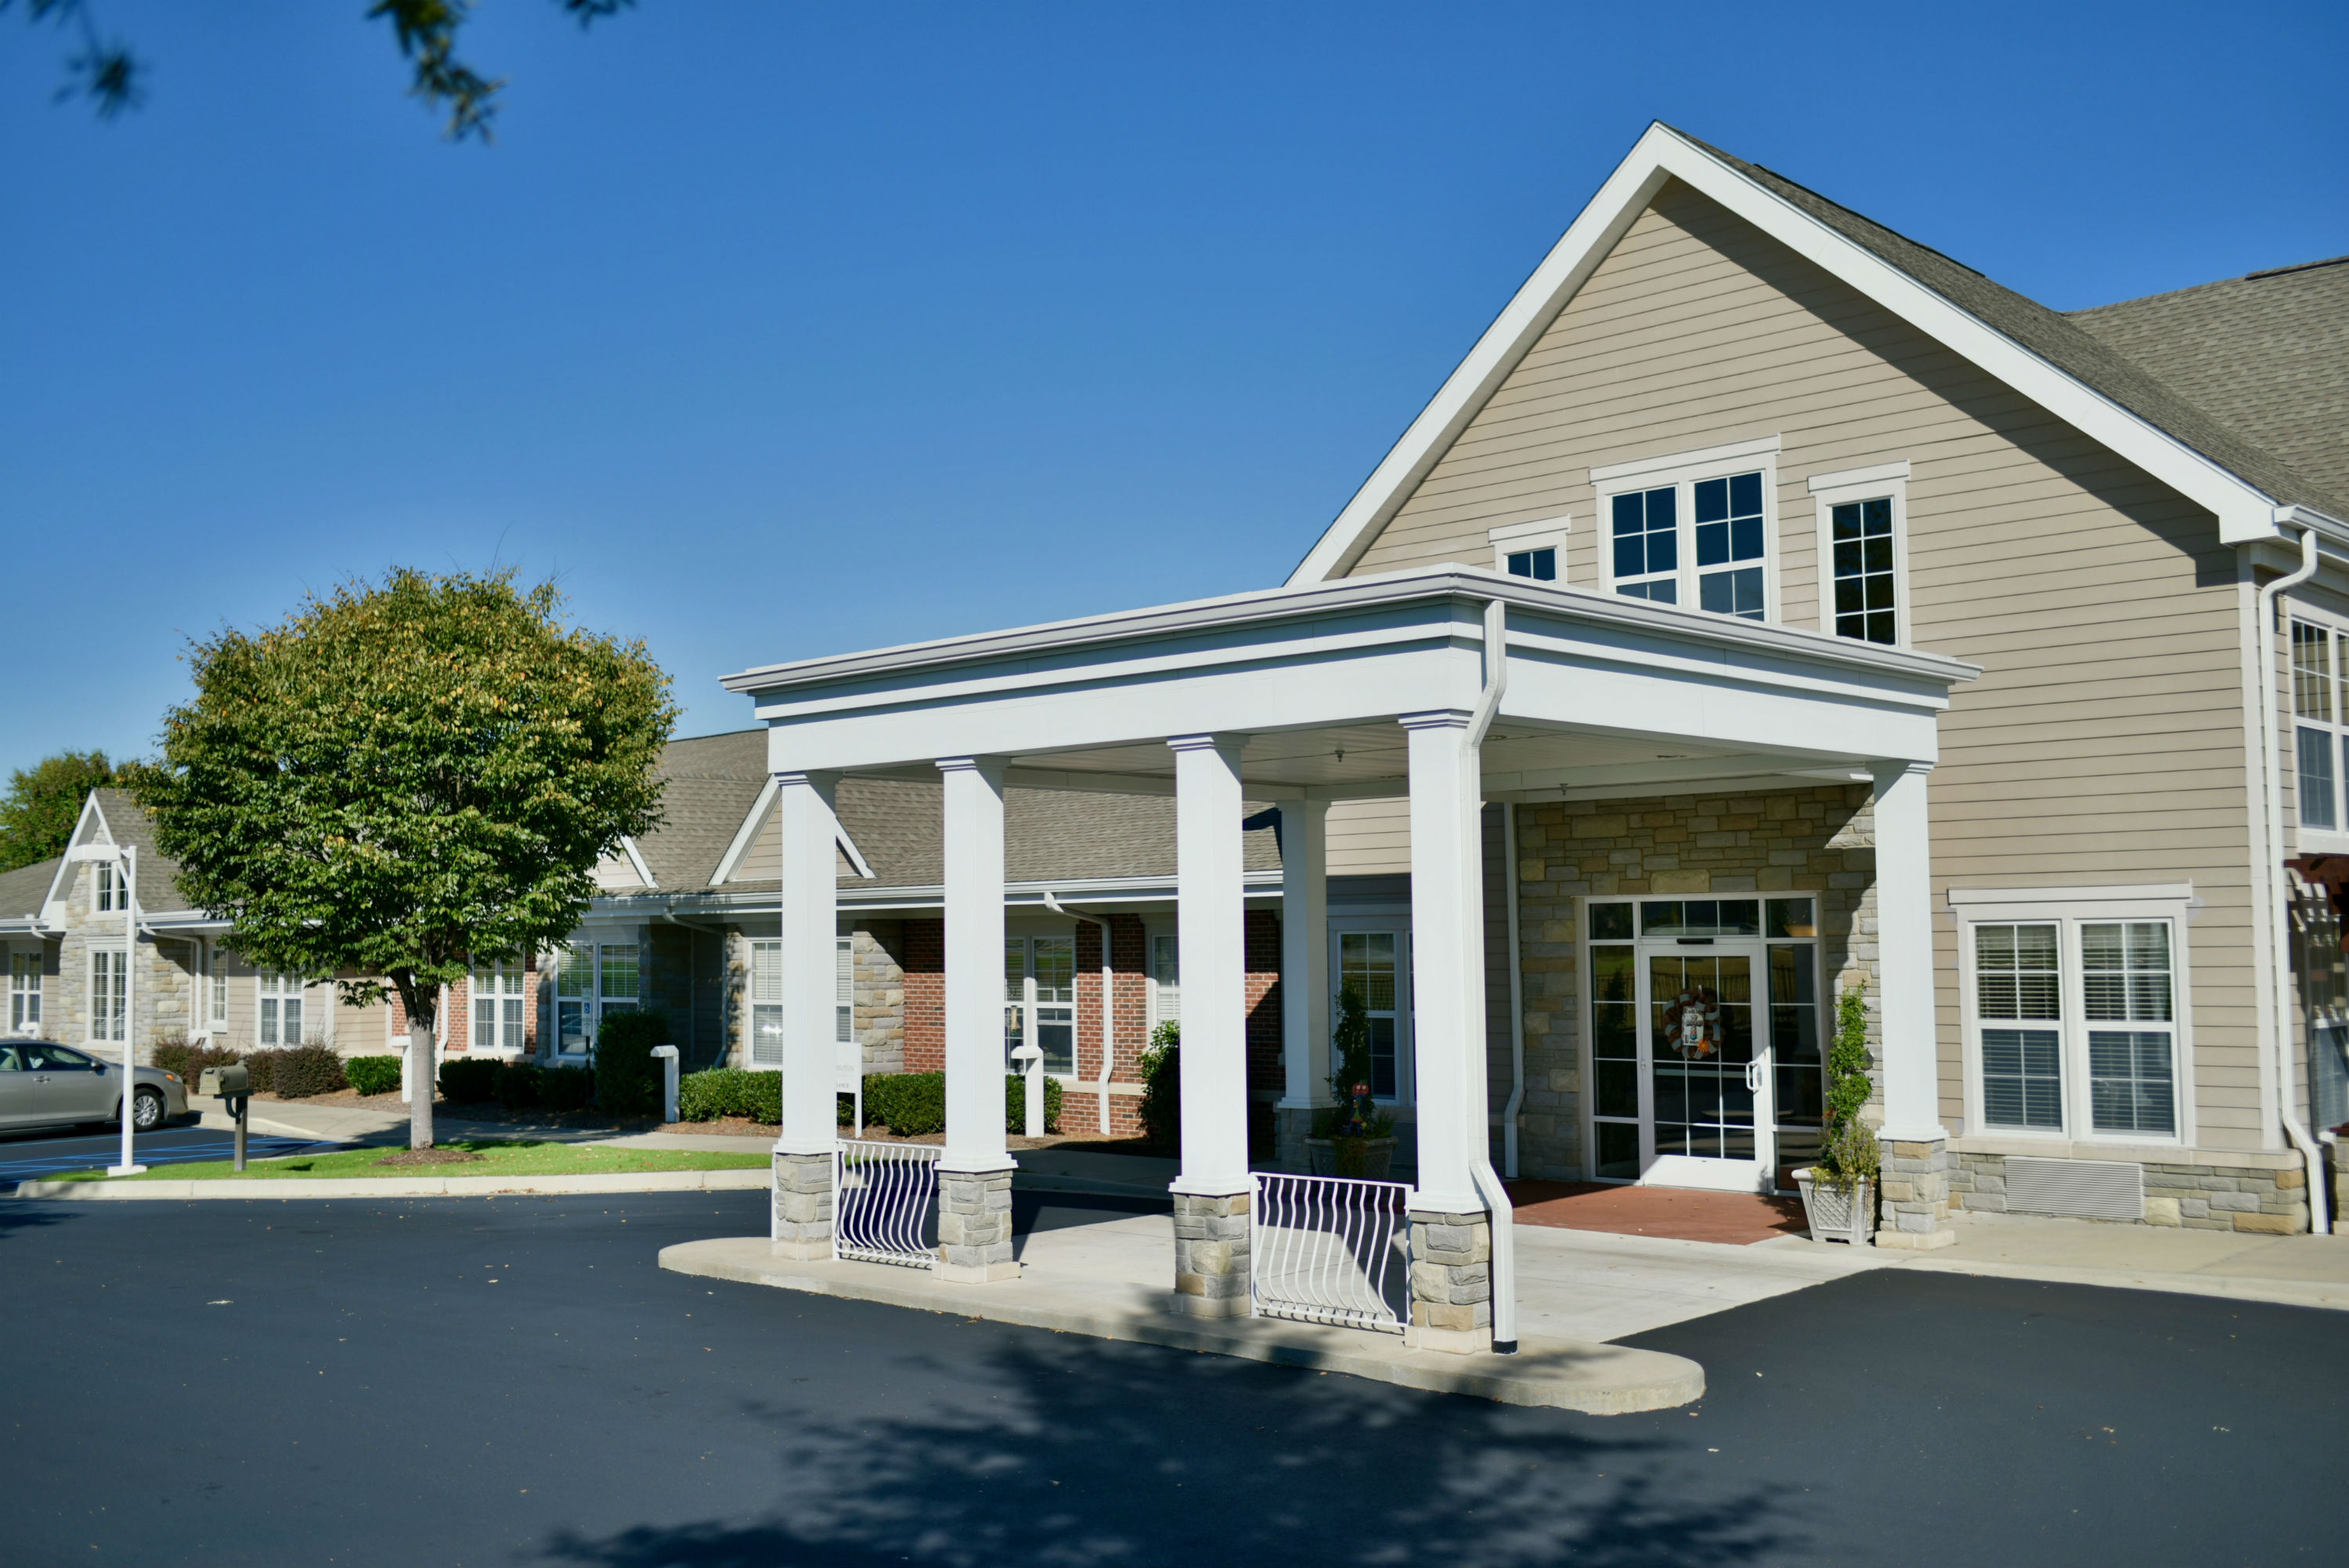 west haven assisted living apollo pa - HD3000×2003